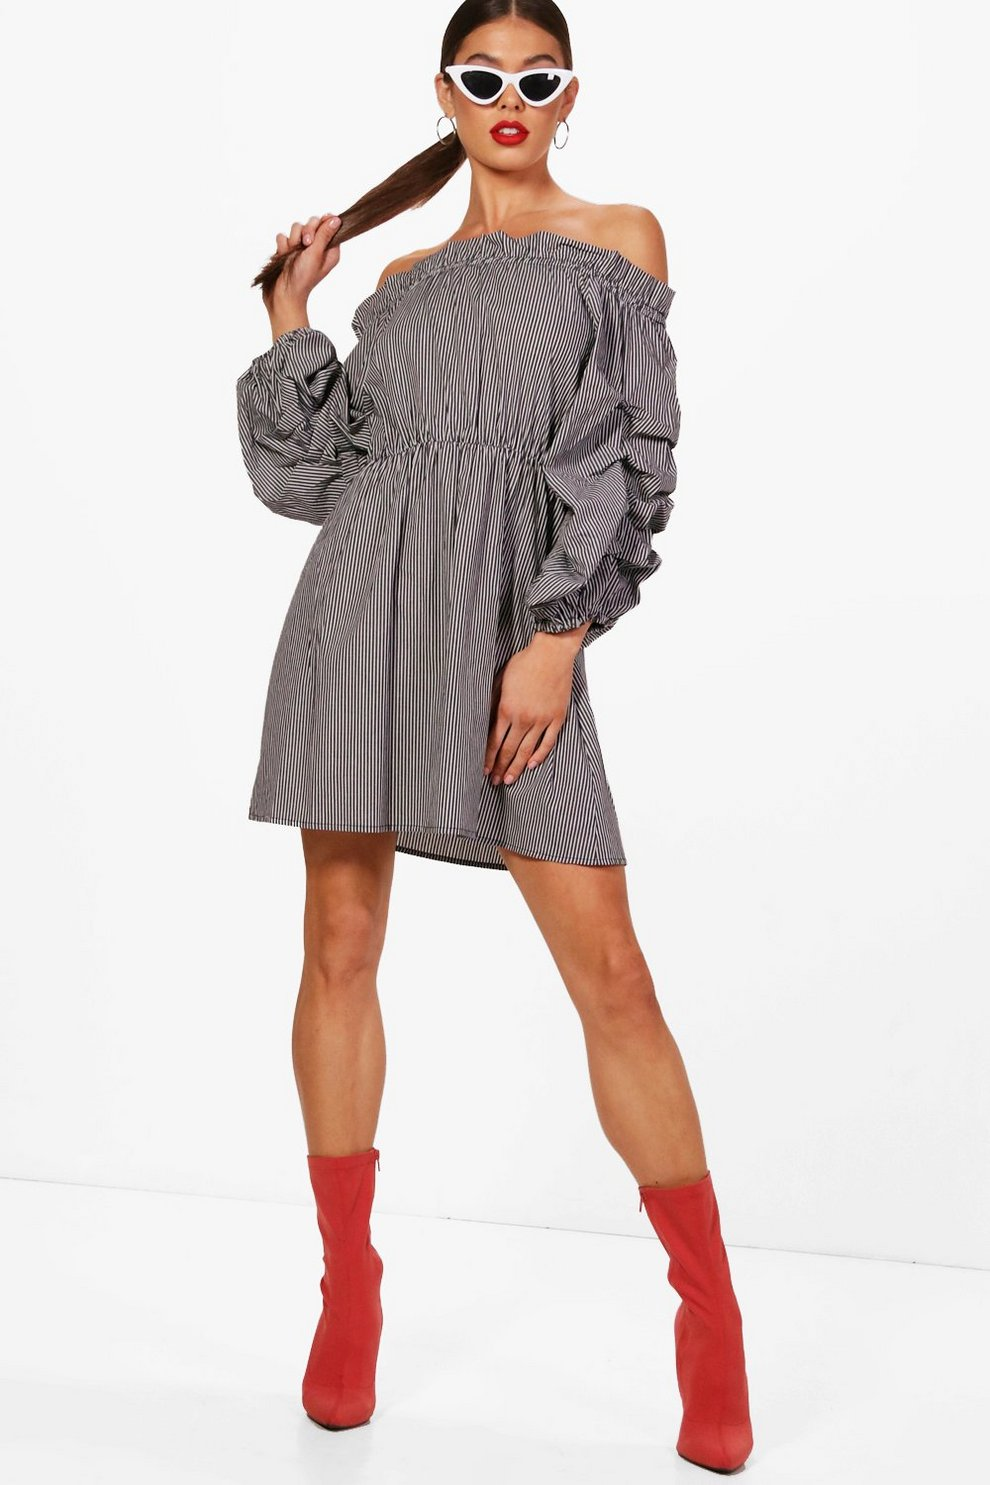 Boohoo Volume Sleeve Off the Shoulder Dress The Cheapest Free Shipping Reliable Shop Your Own VlN6J